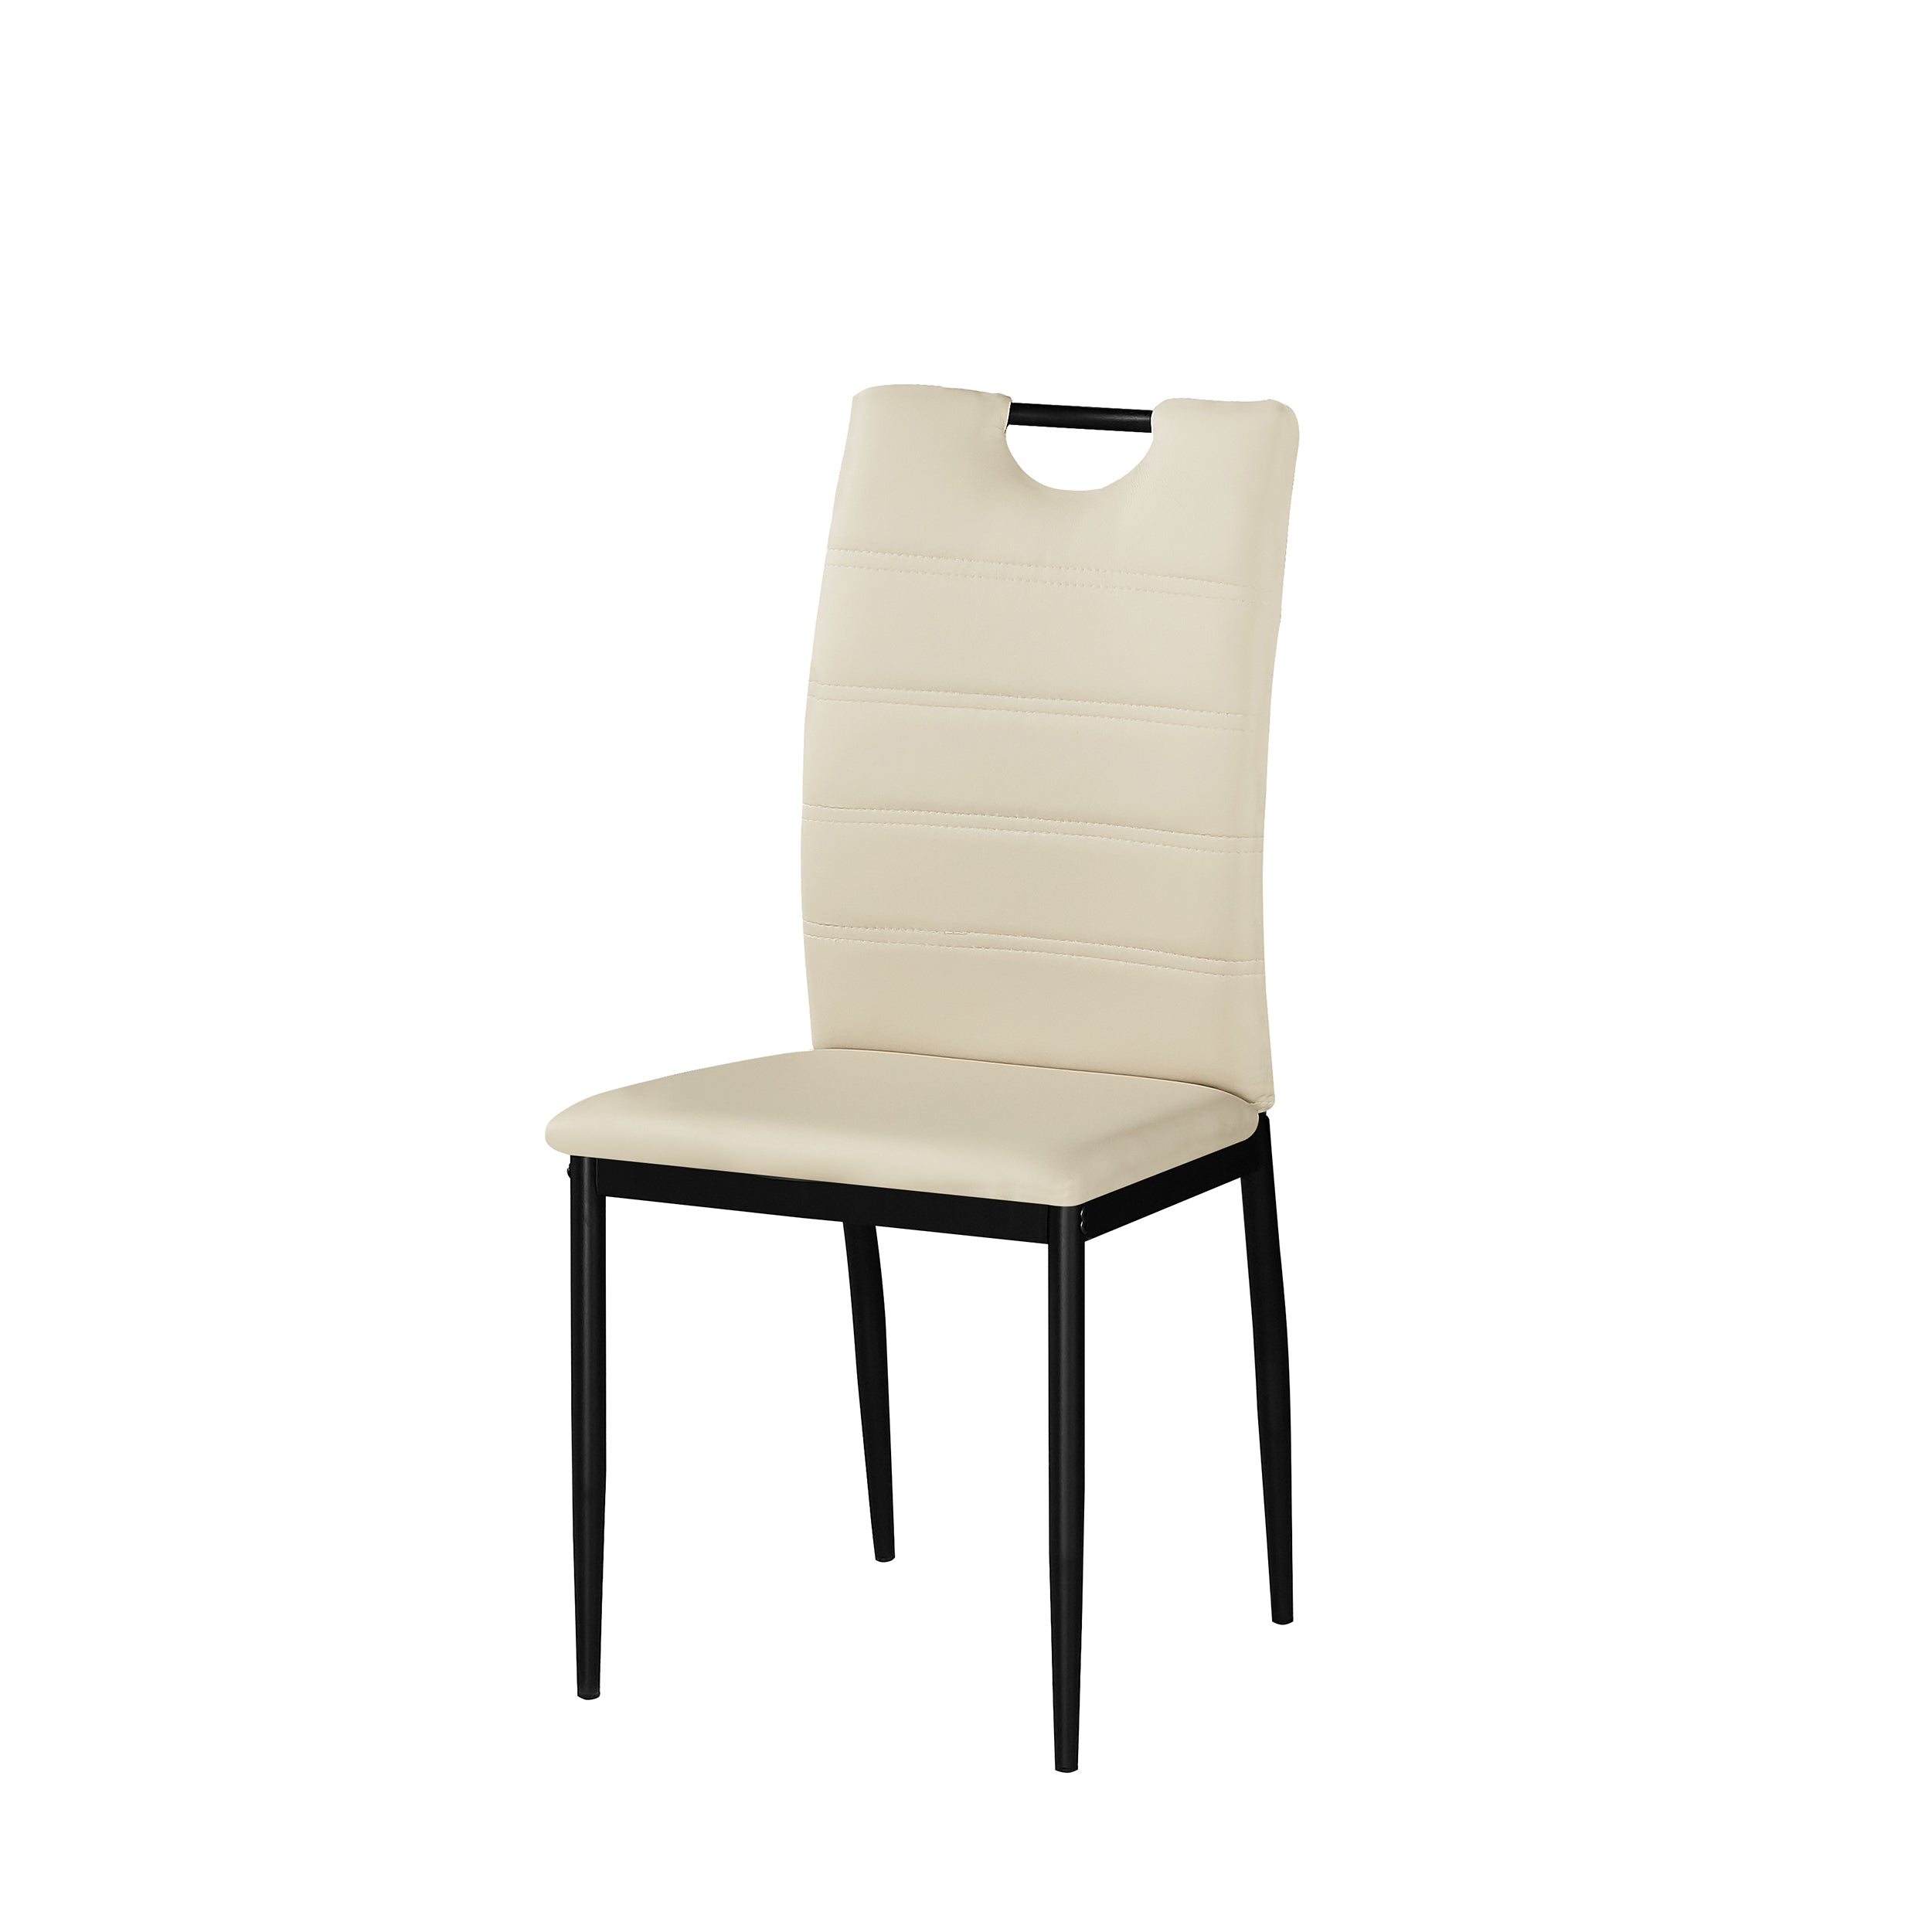 KORINA DINING CHAIR BEIGE